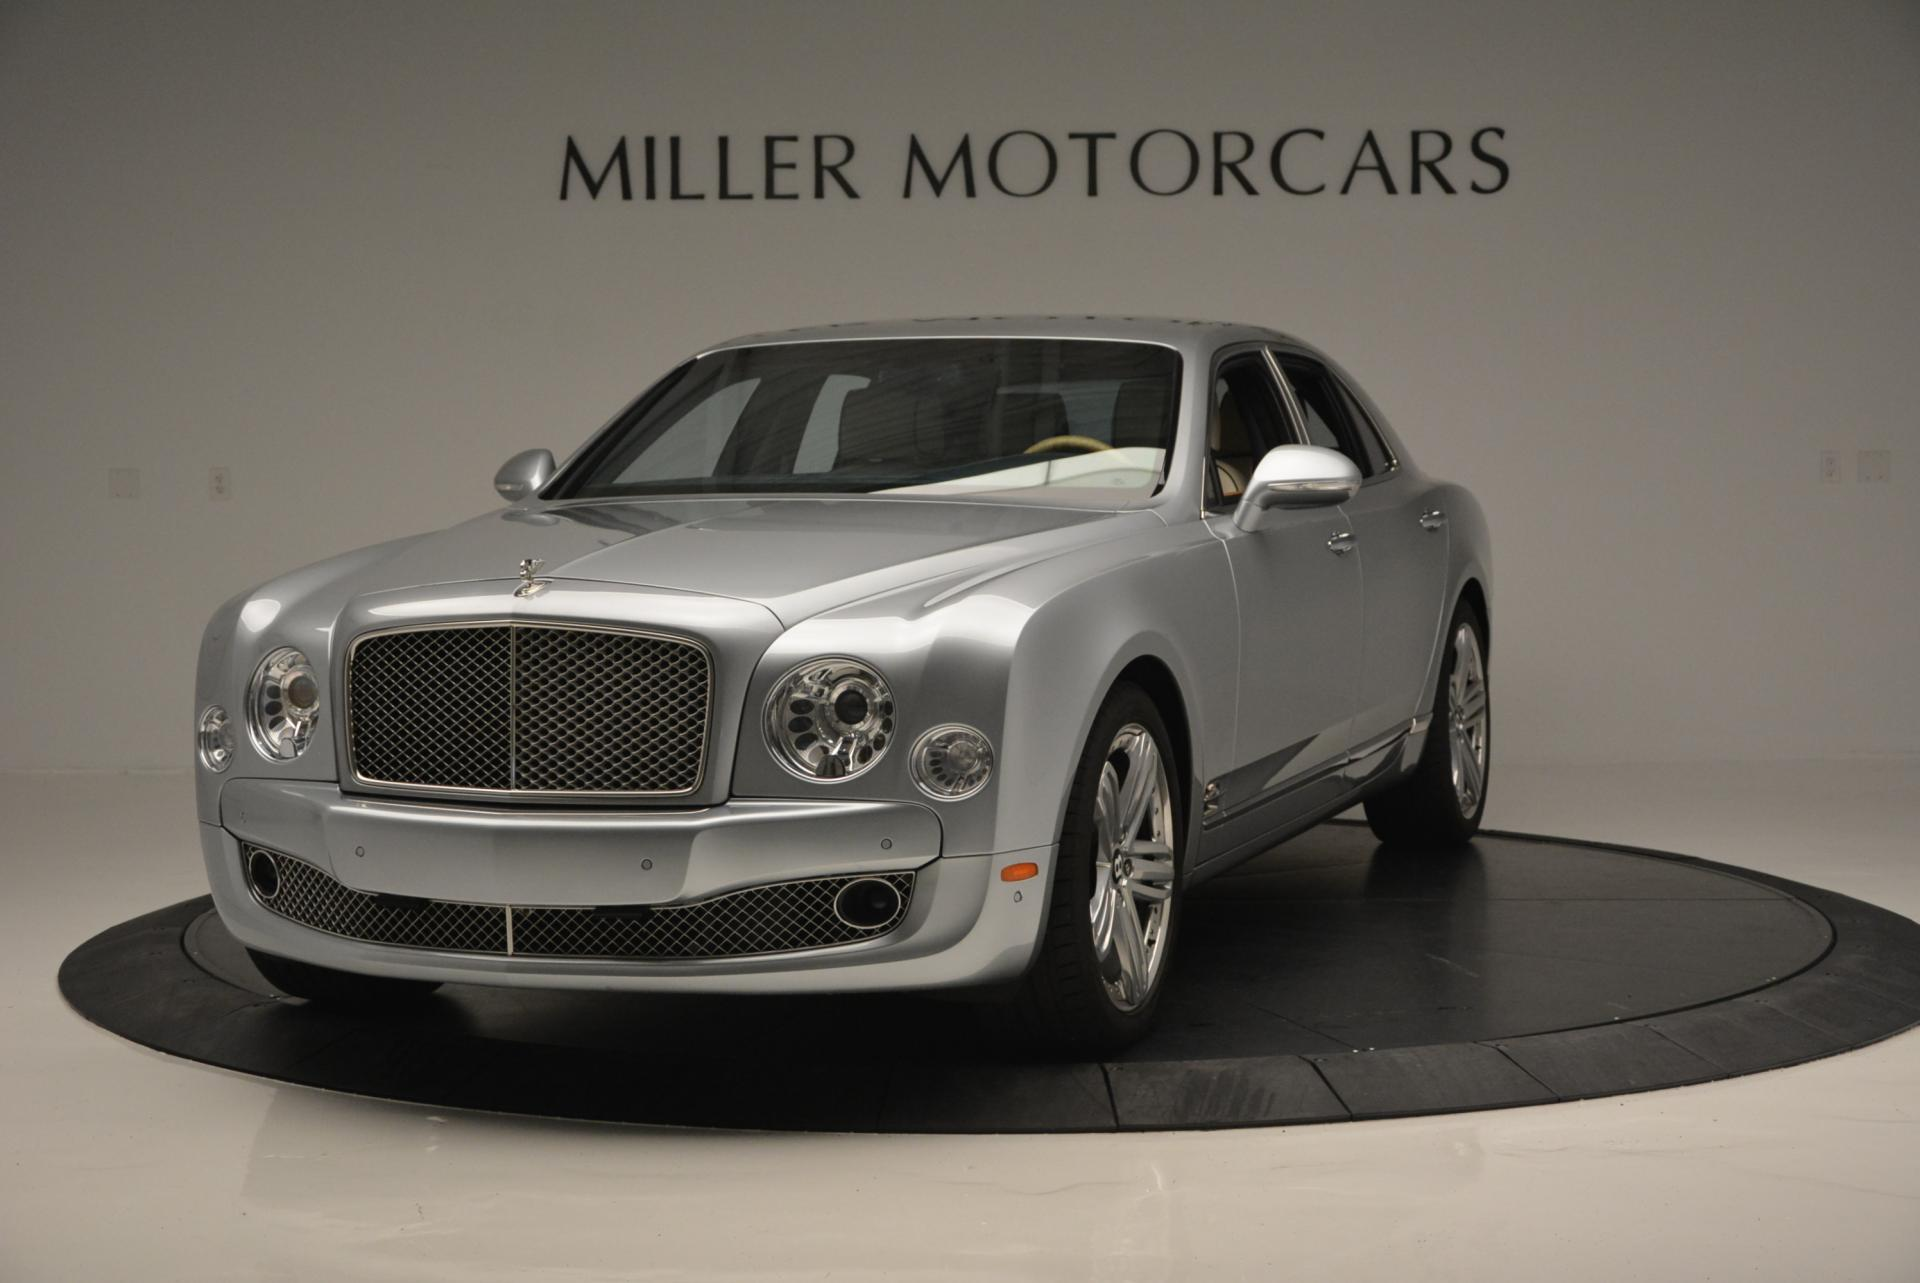 Used 2012 Bentley Mulsanne for sale Sold at Bugatti of Greenwich in Greenwich CT 06830 1